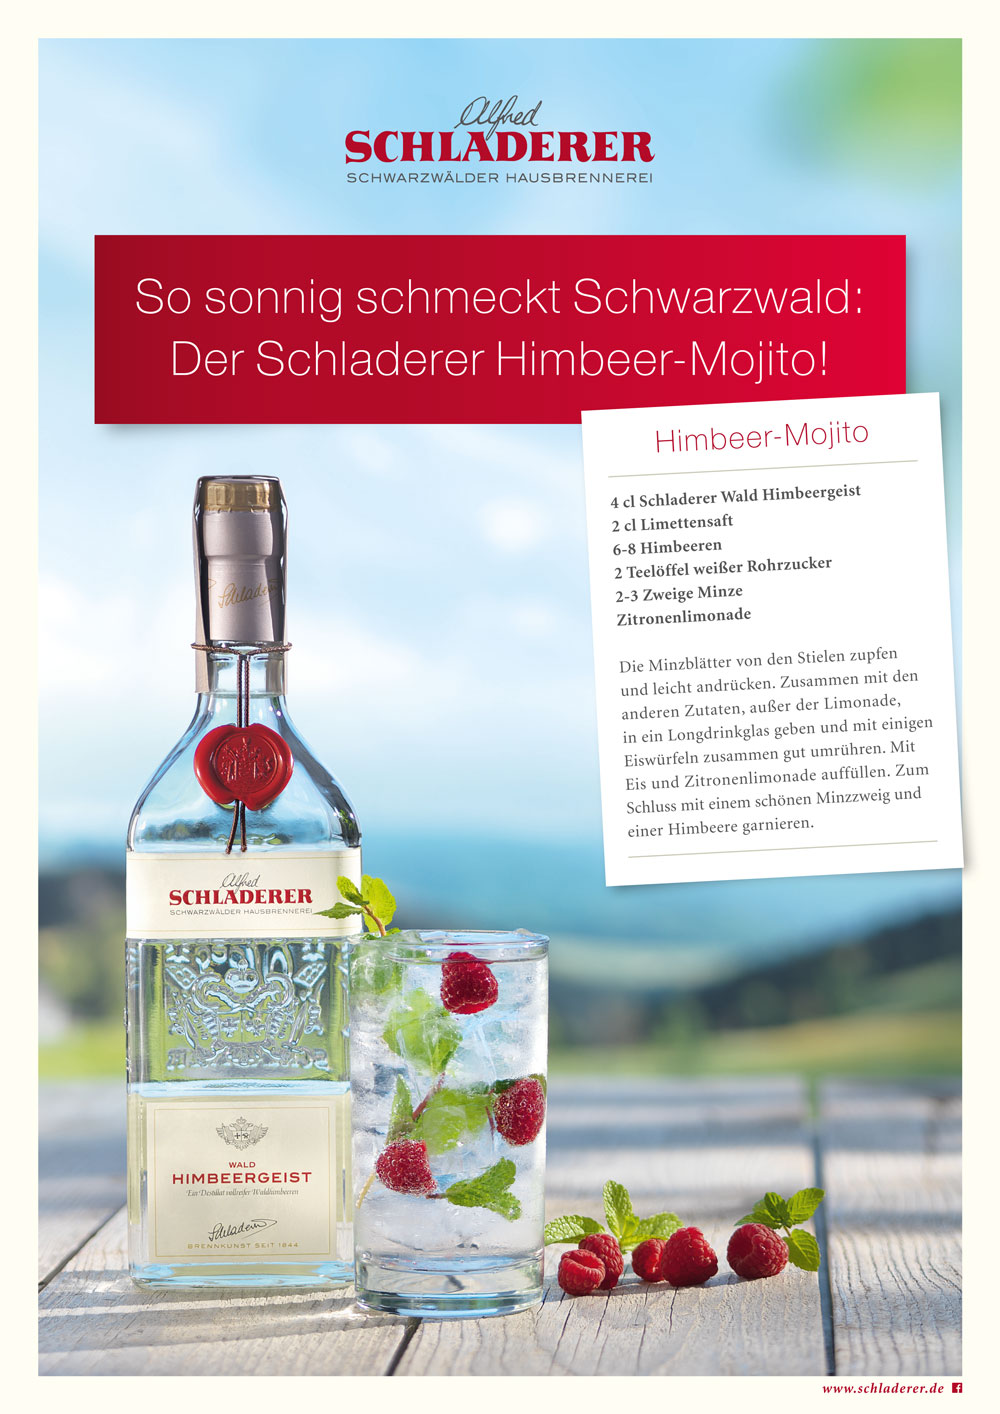 Schladerer Himbeer-Mojito